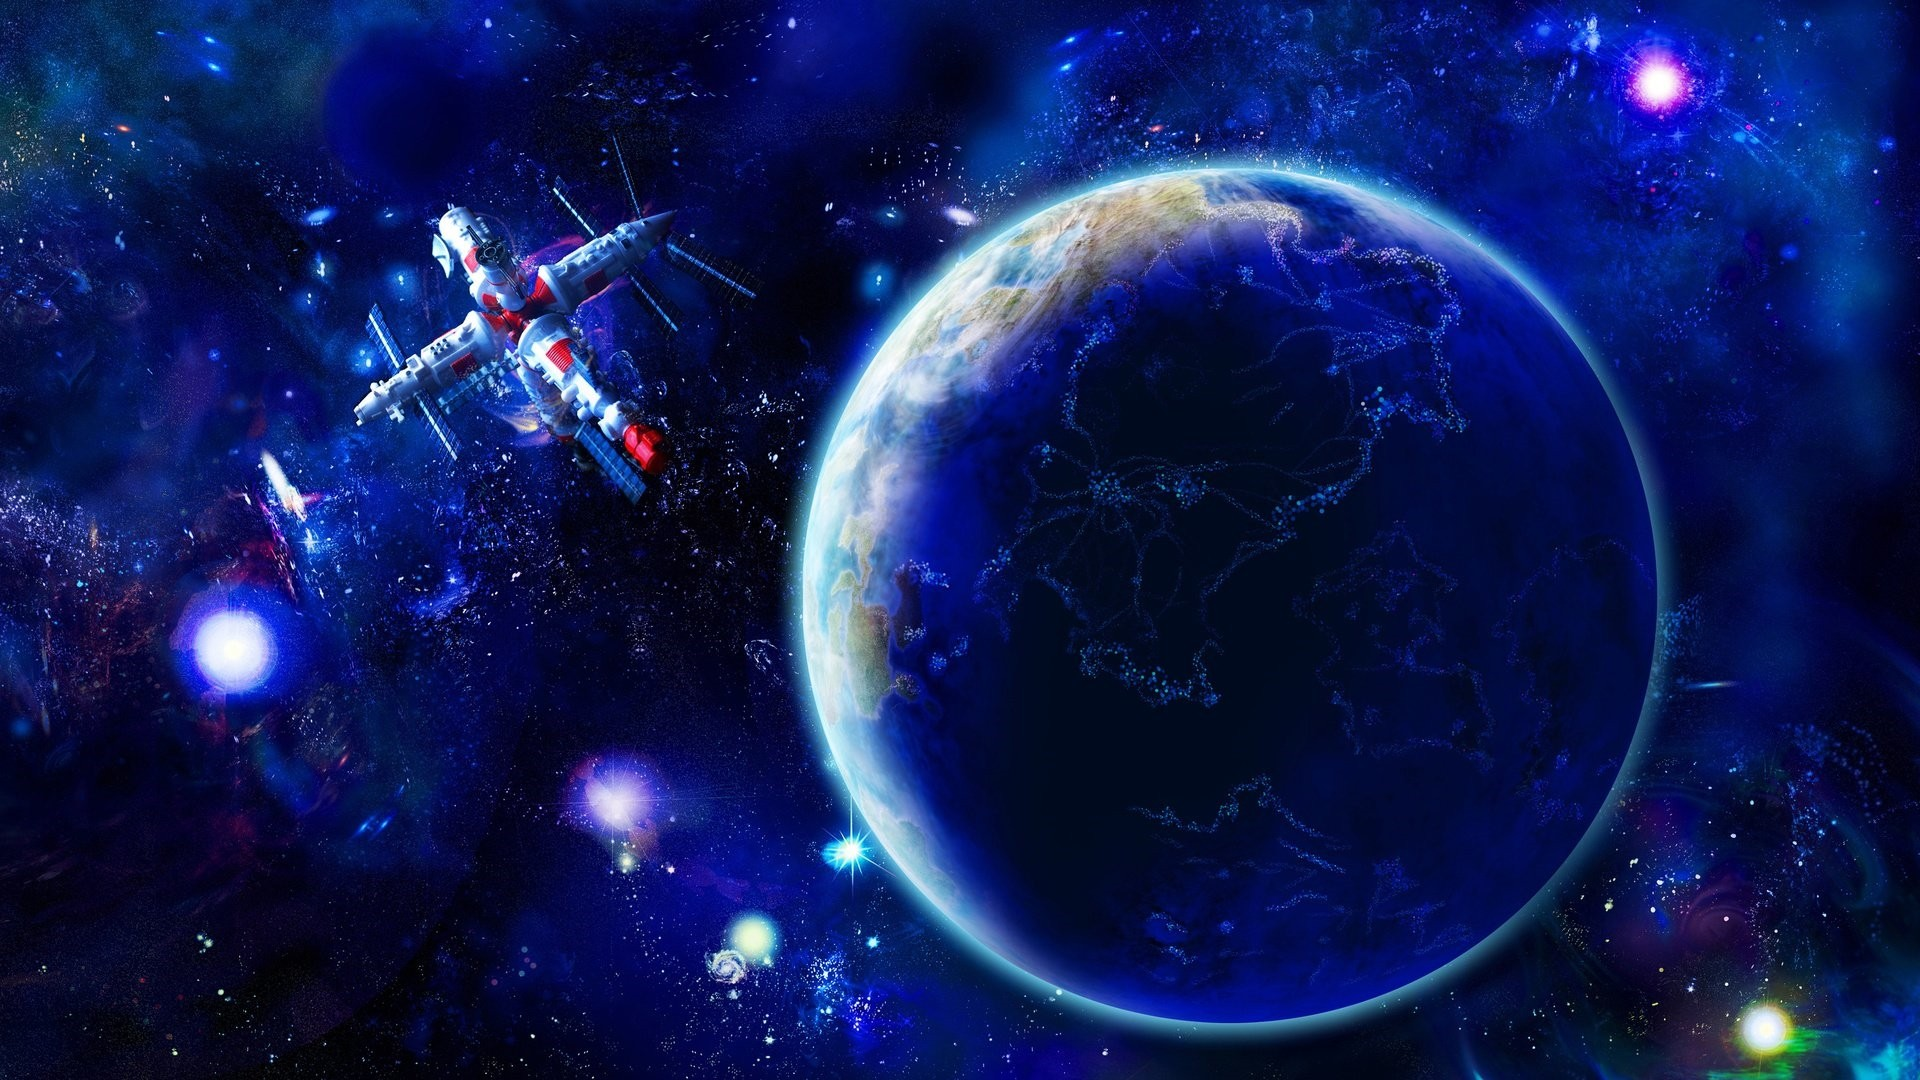 Outer Space Wallpaper image hd